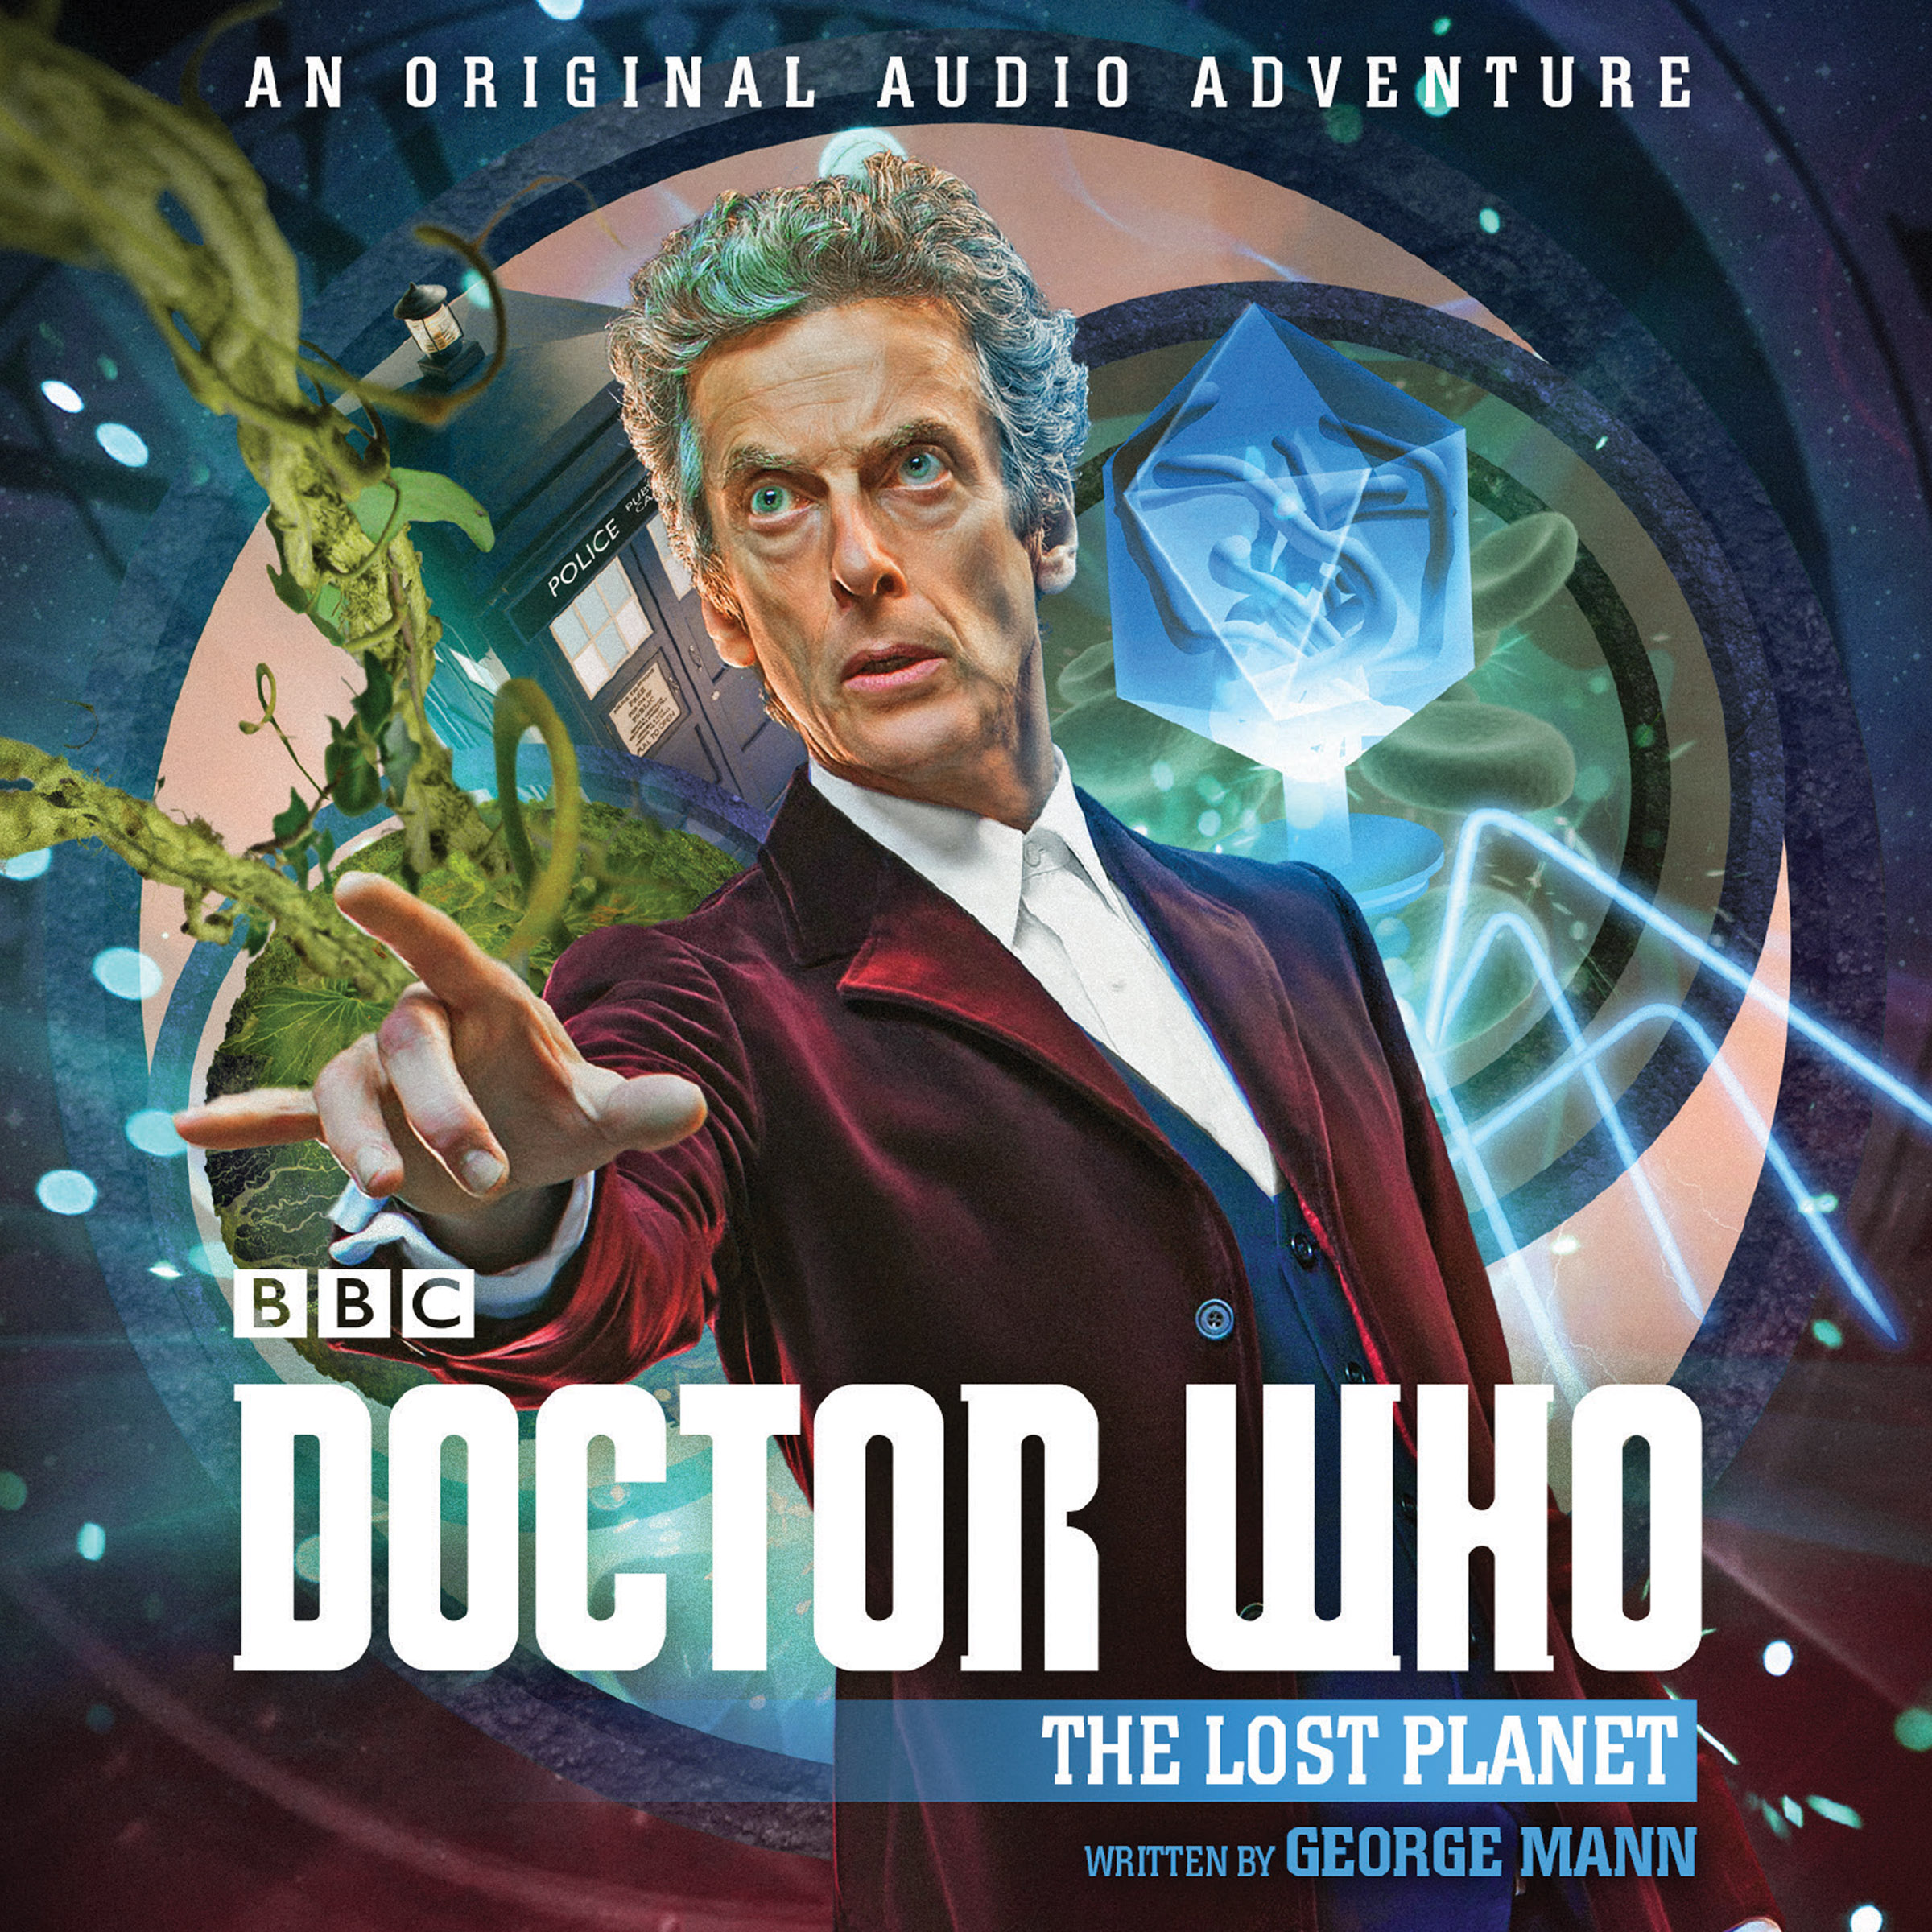 The Lost Planet (Credit: BBC Audio)